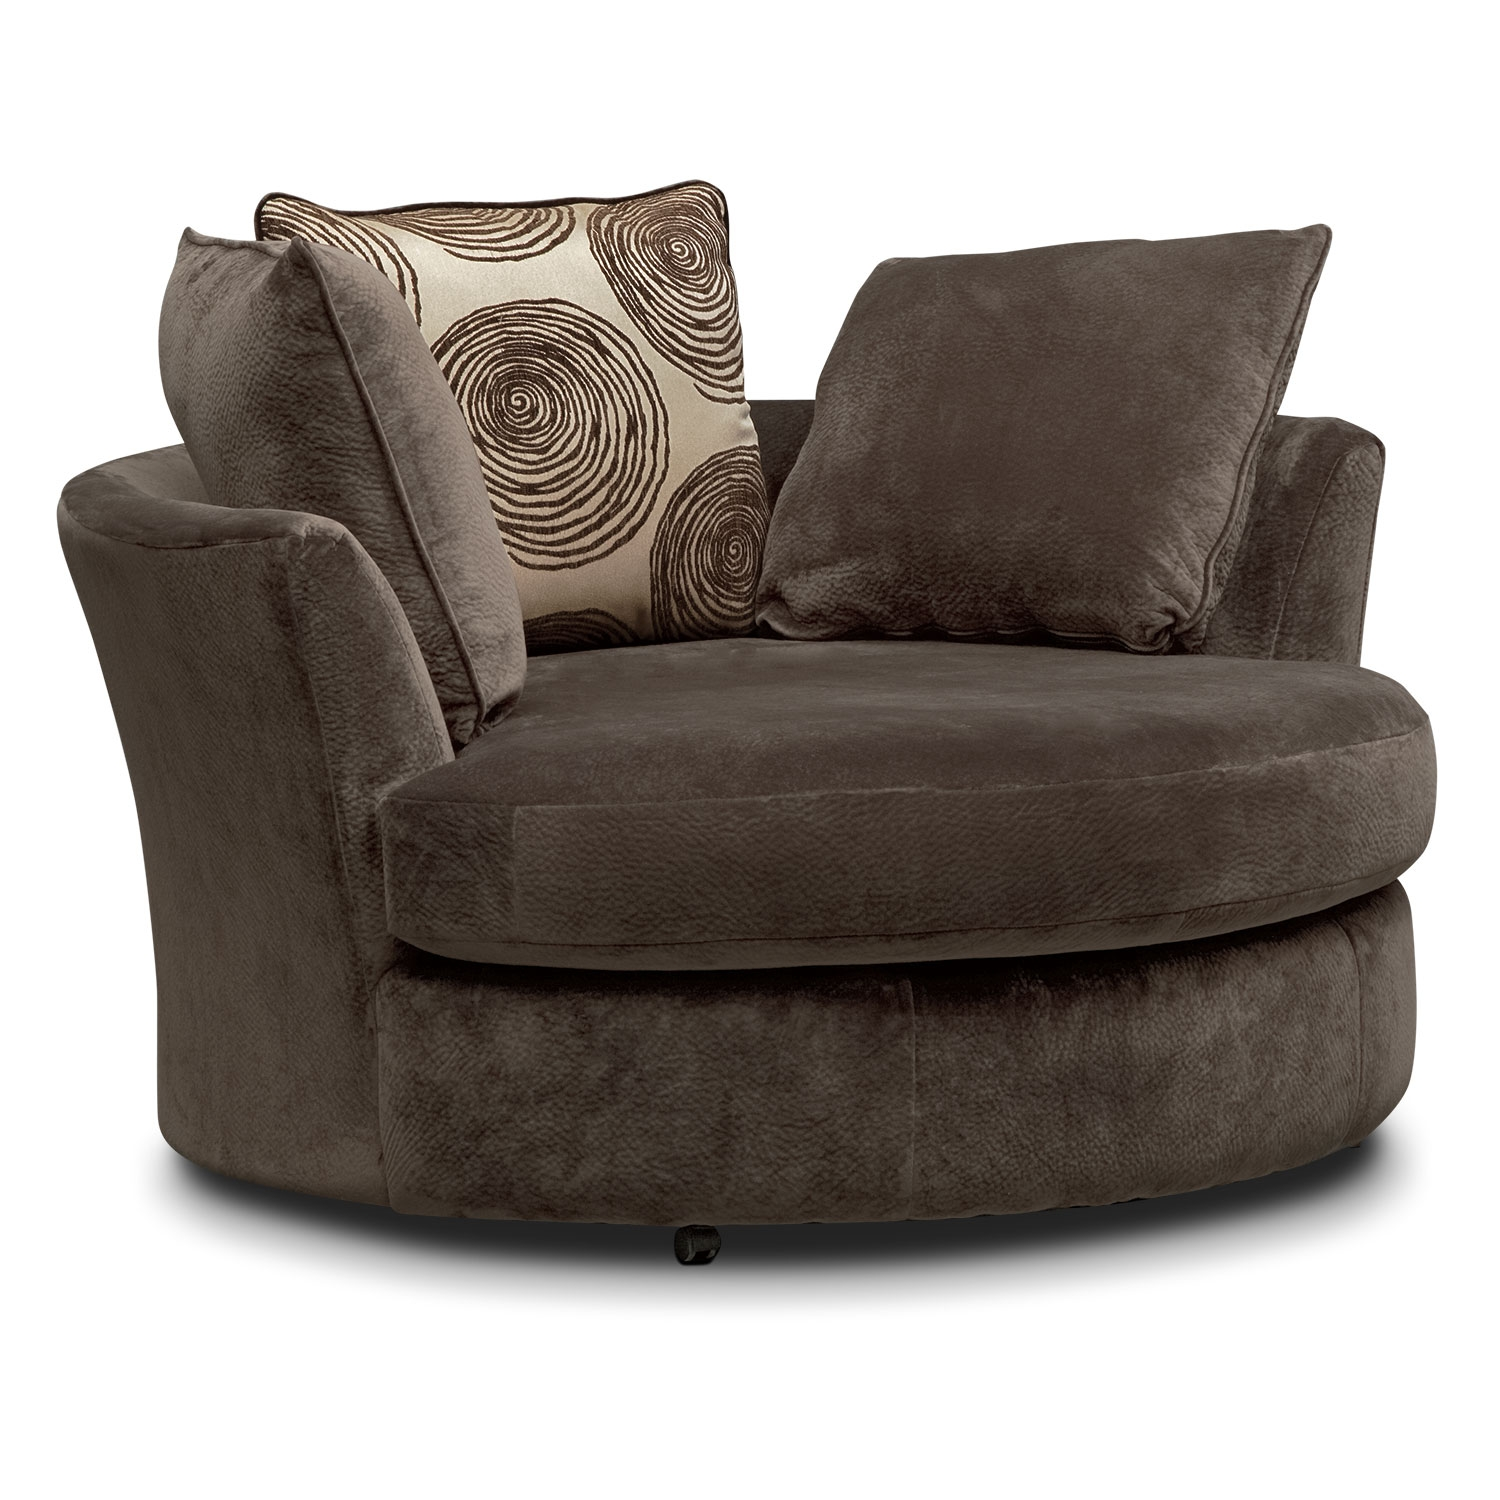 Cordelle Swivel Chair Chocolate Value City Furniture Within Swivel Sofa Chairs (Image 3 of 15)